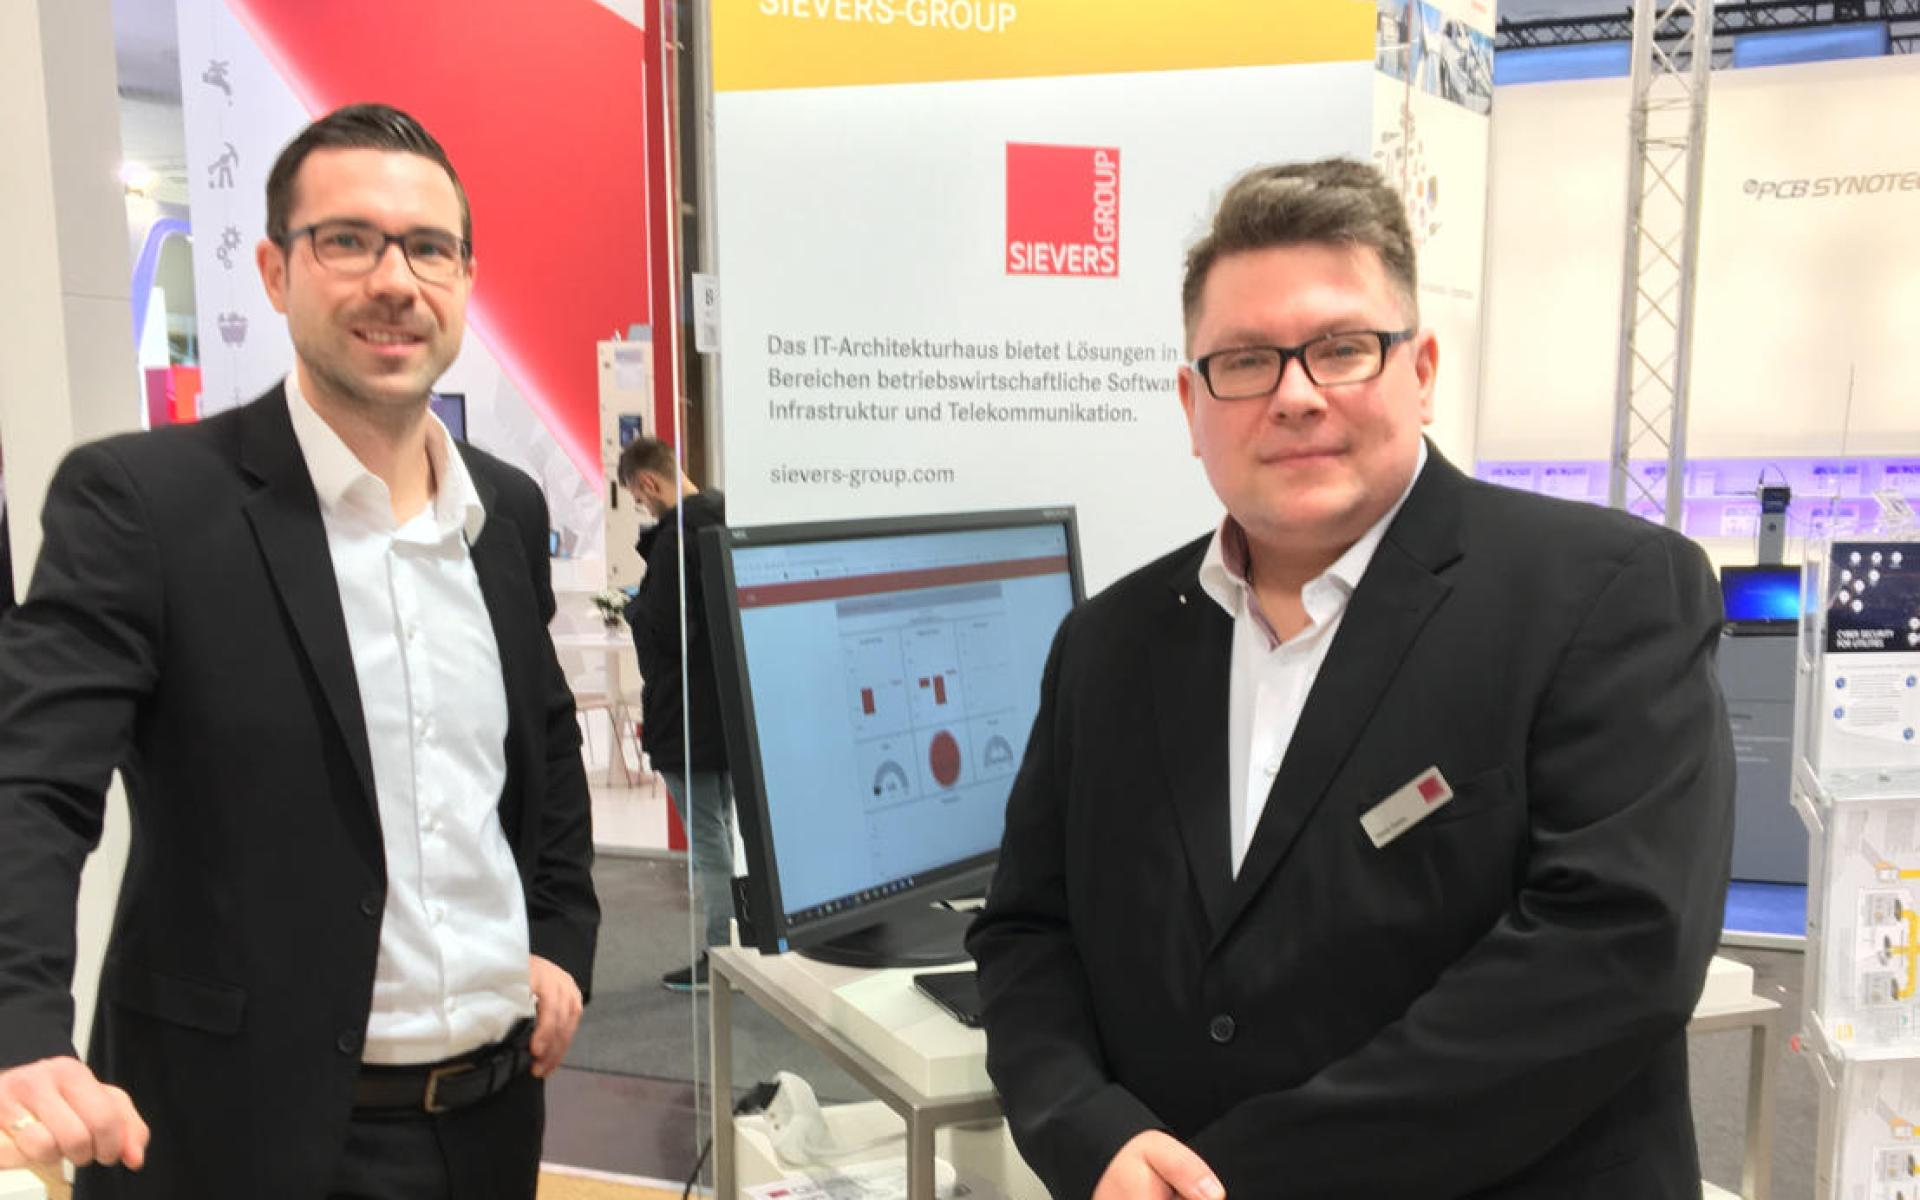 [Blog] Use Case der SIEVERS-GROUP auf der #HM19